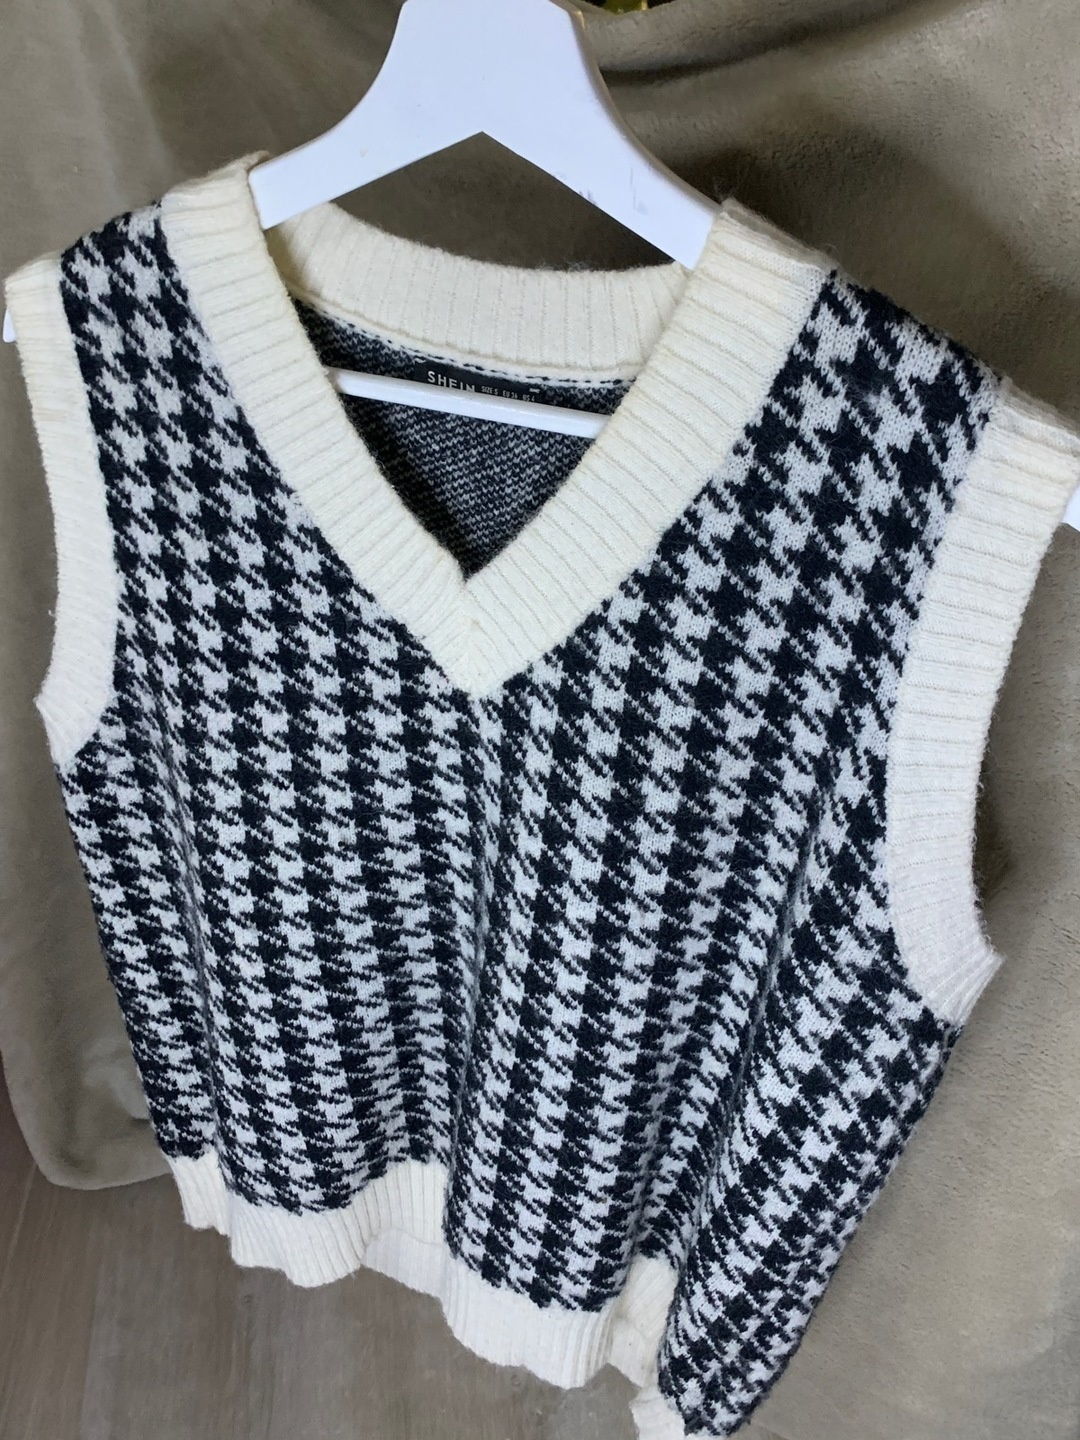 Women's jumpers & cardigans - SHEIN photo 1